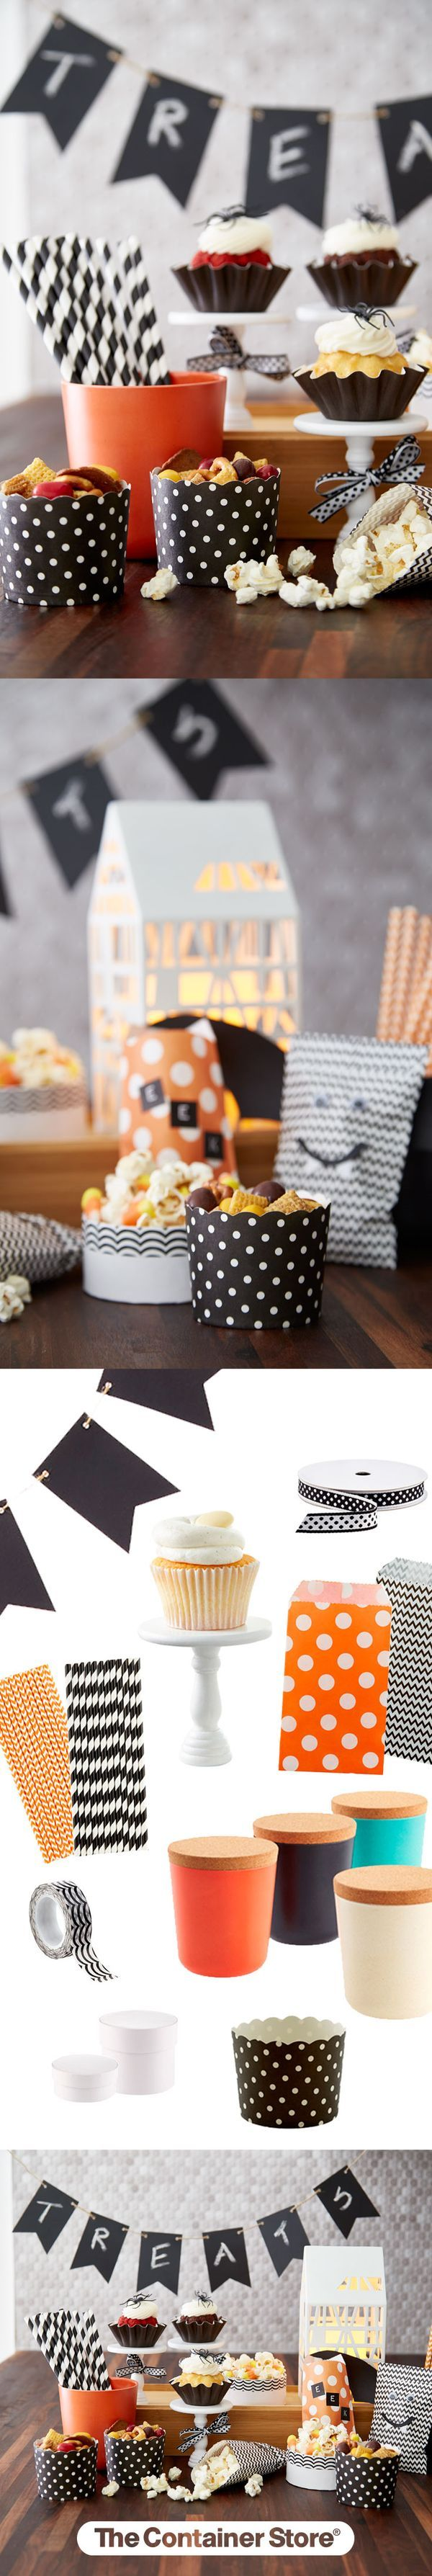 Straws, bags, tape - oh my! Create the cute this year with necessities from The Container Store!: